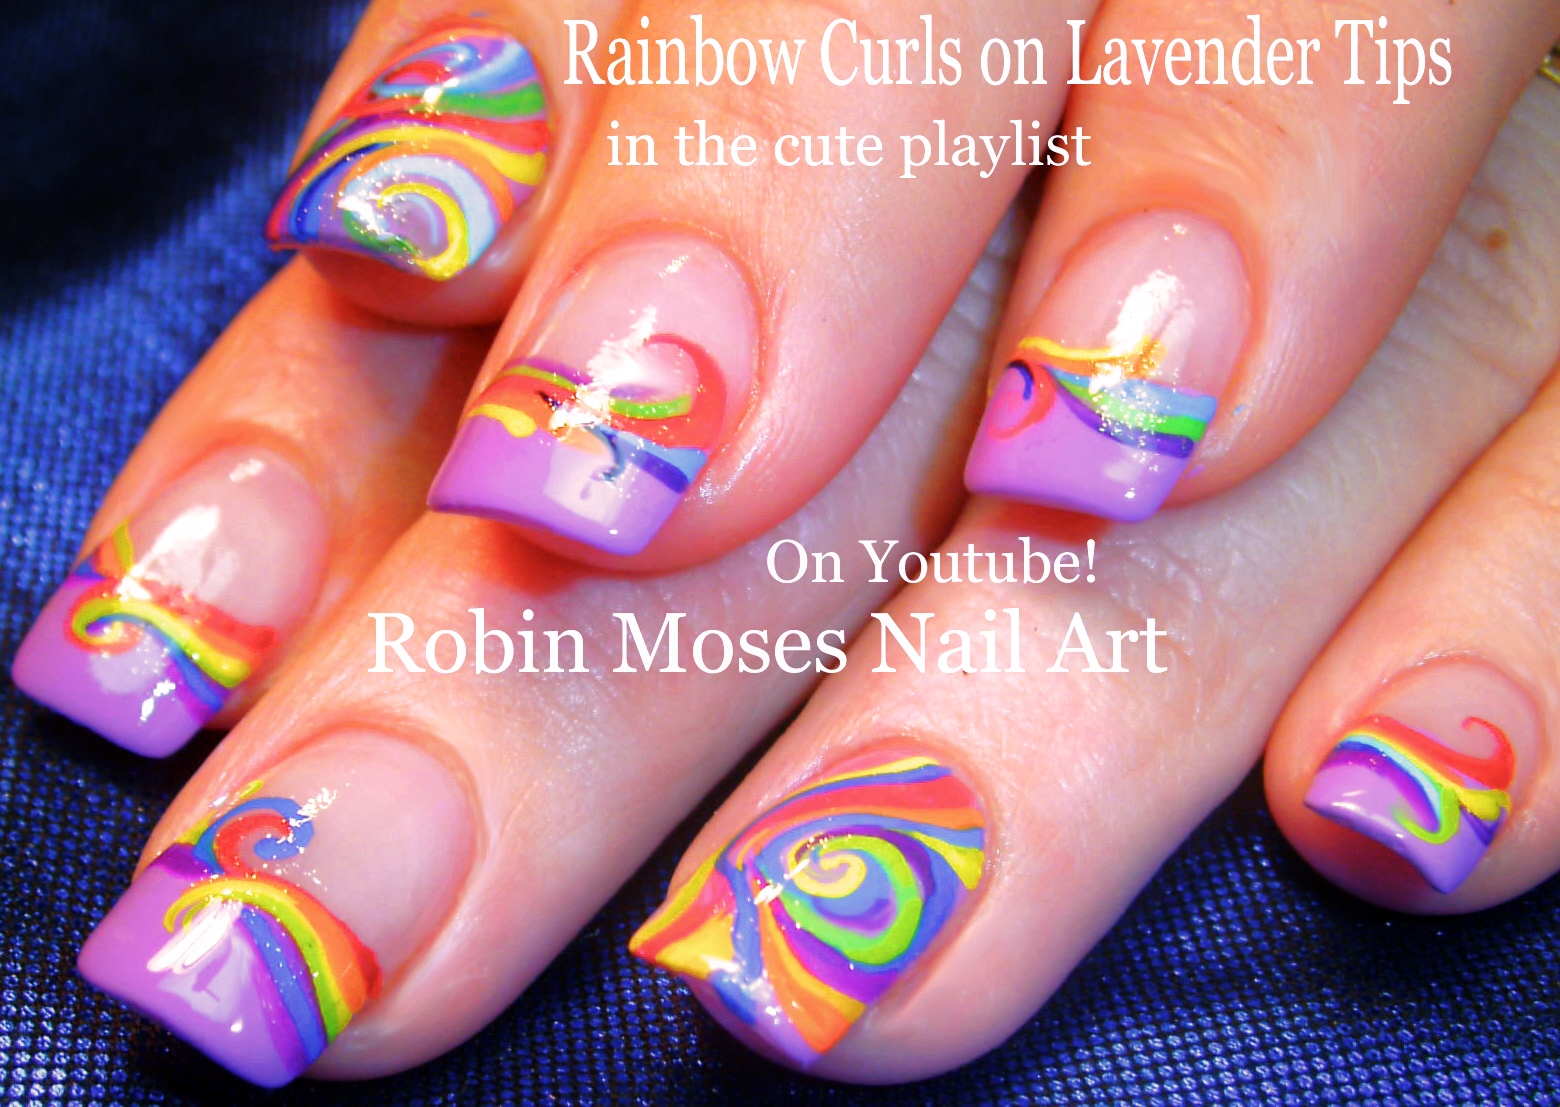 Rainbow Curls On Lavender Tips Nail Art Design Tutorial AND Pink Black And White Flower Nails